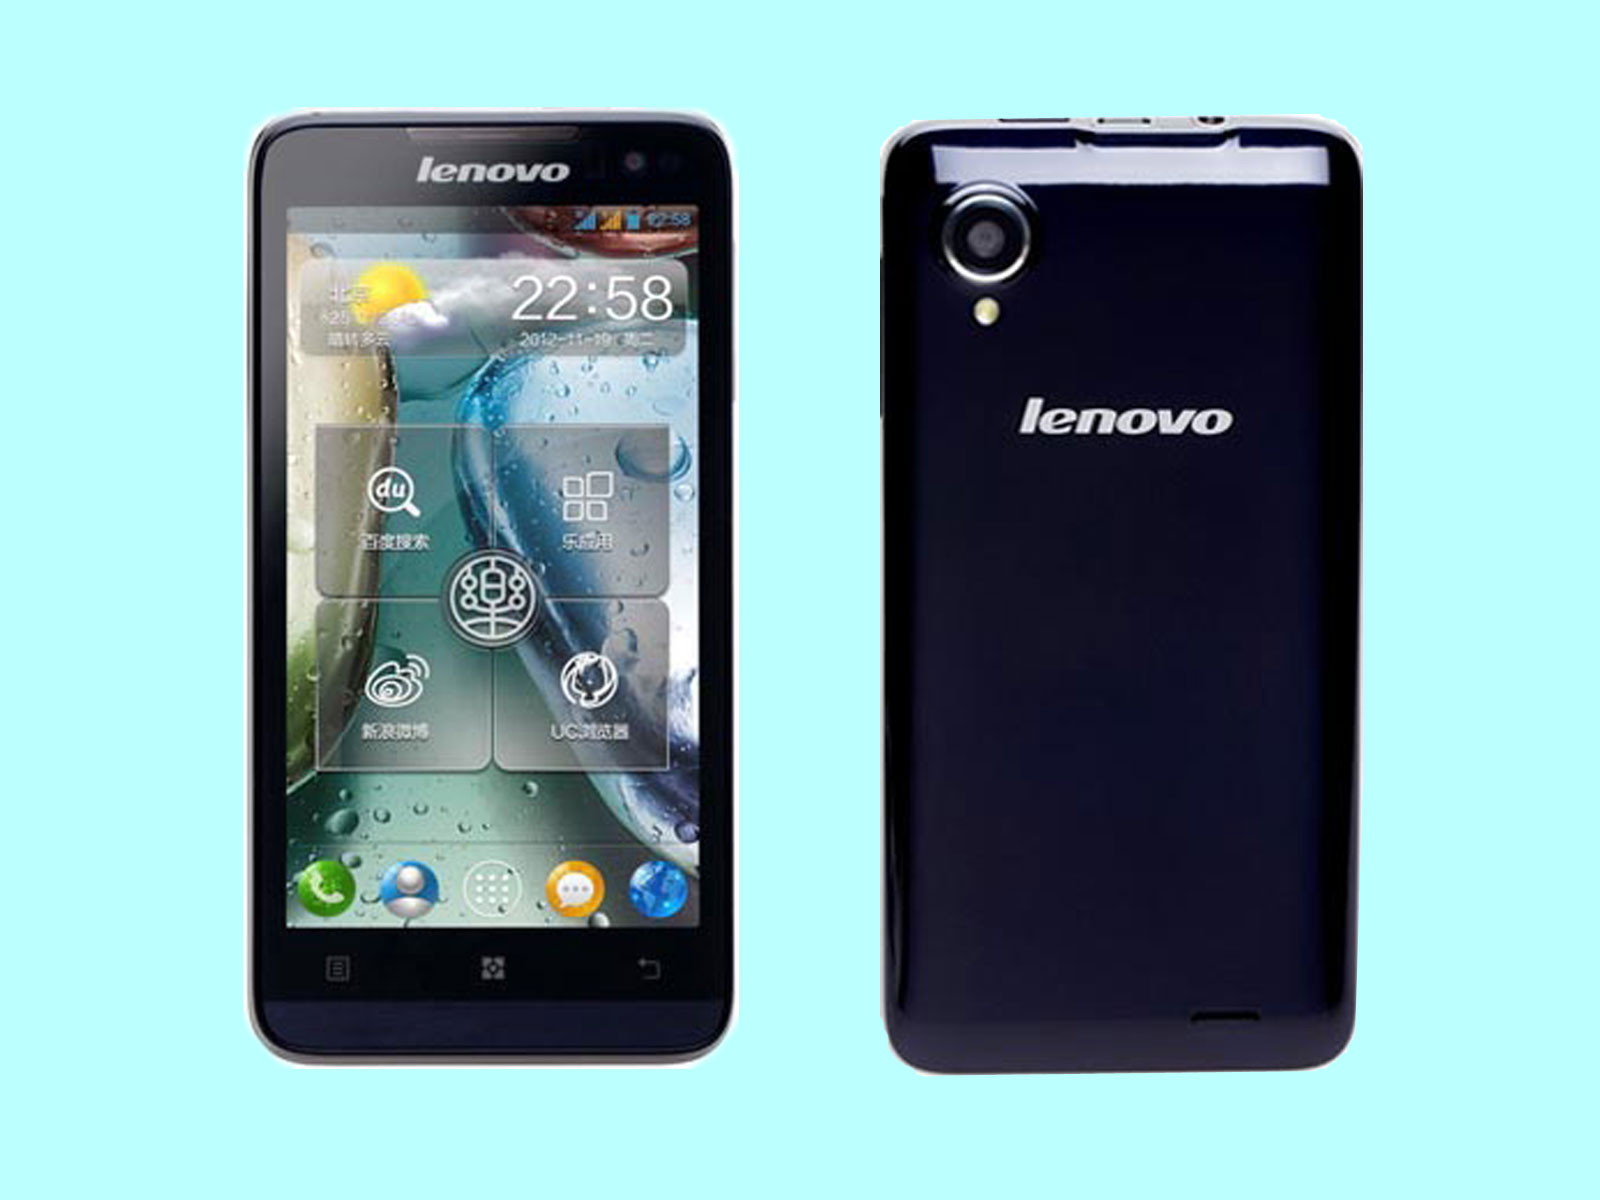 New Mobile Phone Photos Lenovo K800 Android Mobile Phone